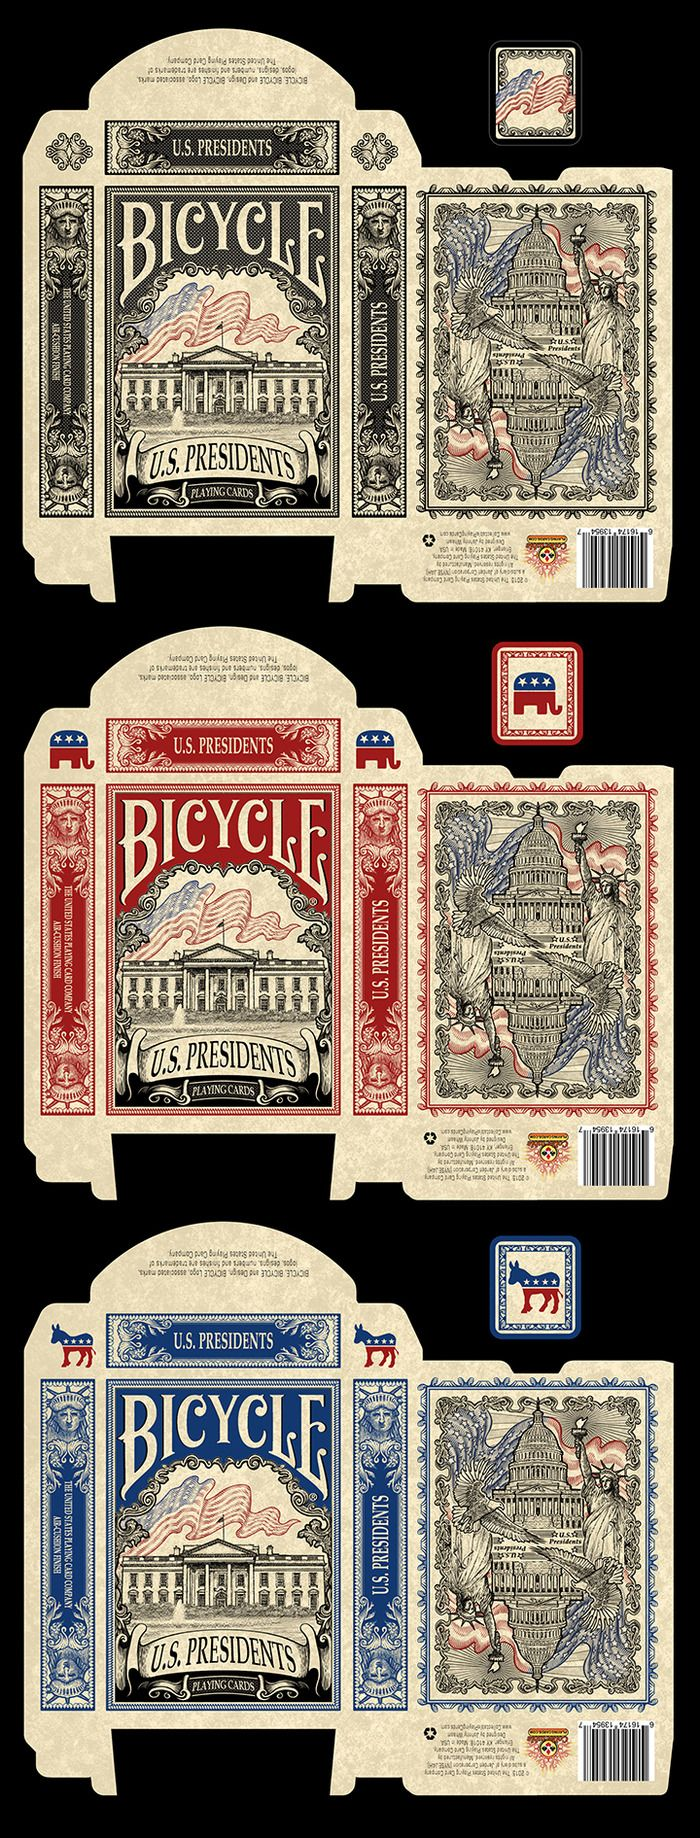 Bicycle US Presidents Playing Cards by Collectable Playing Cards — Kickstarter